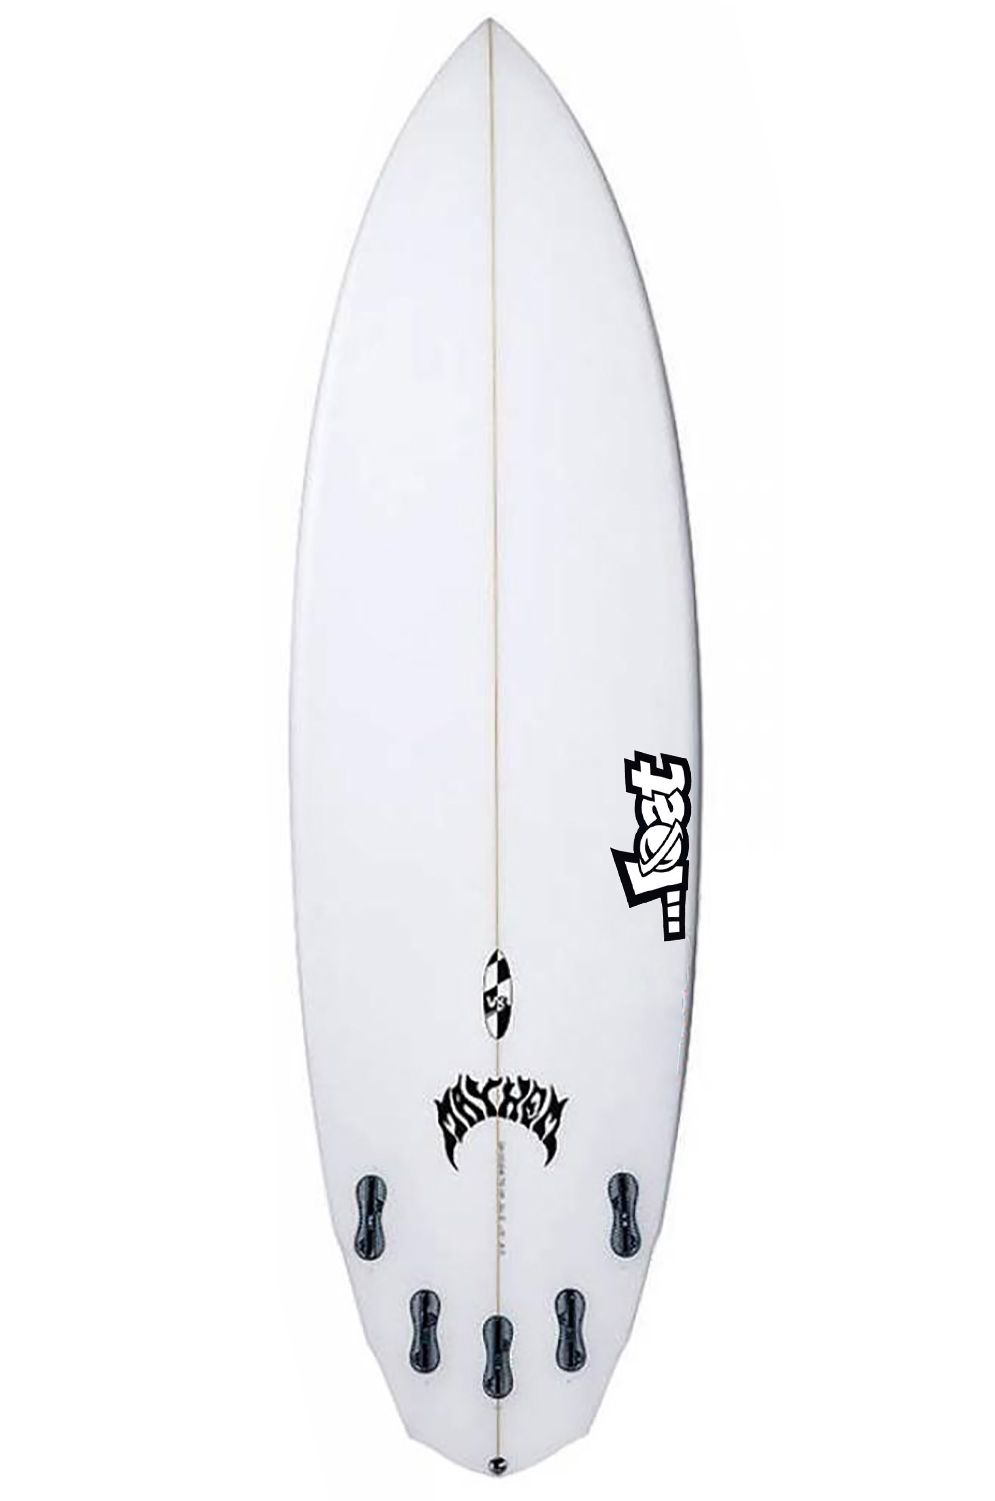 Prancha Surf Lost V3 ROCKET 5'8 Diamond Tail - White FCS II Multisystem 5ft8